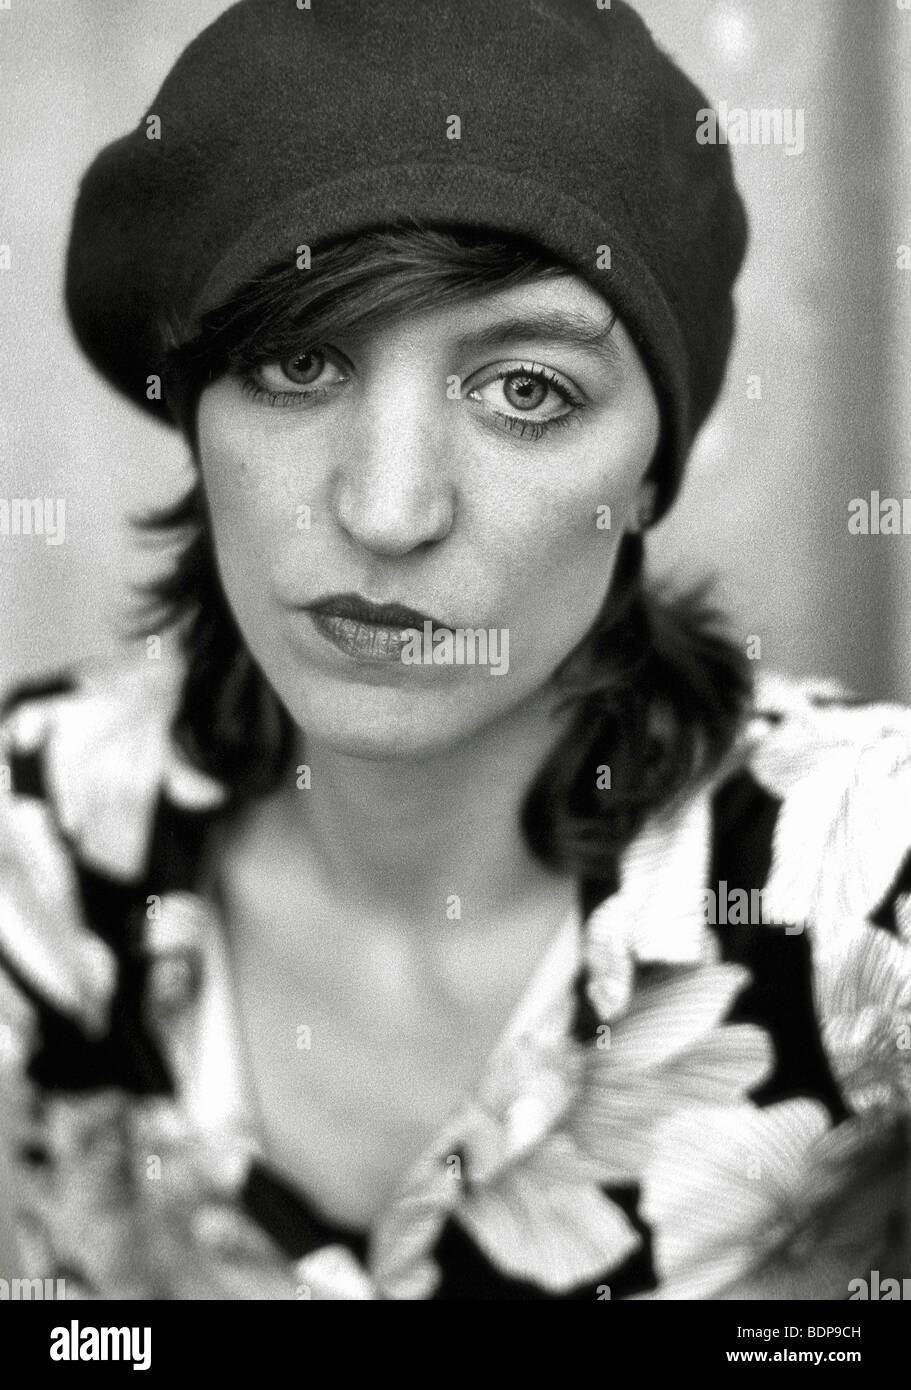 a middle aged woman wearing a hat lookig directly at the camera - Stock  Image 2a9cc8e0d0bc